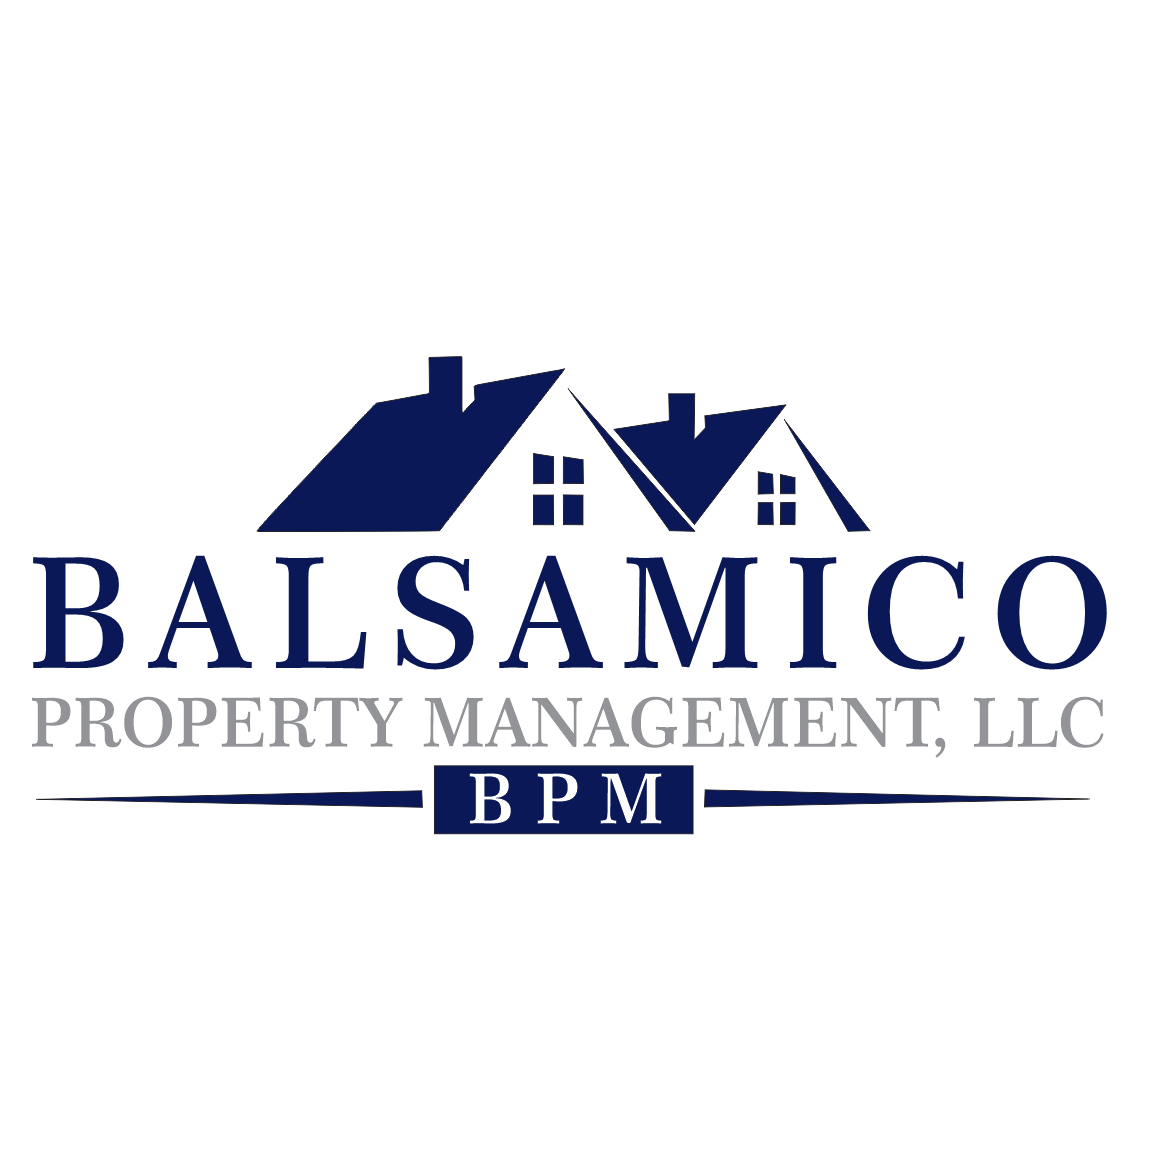 Balsamico Property Management